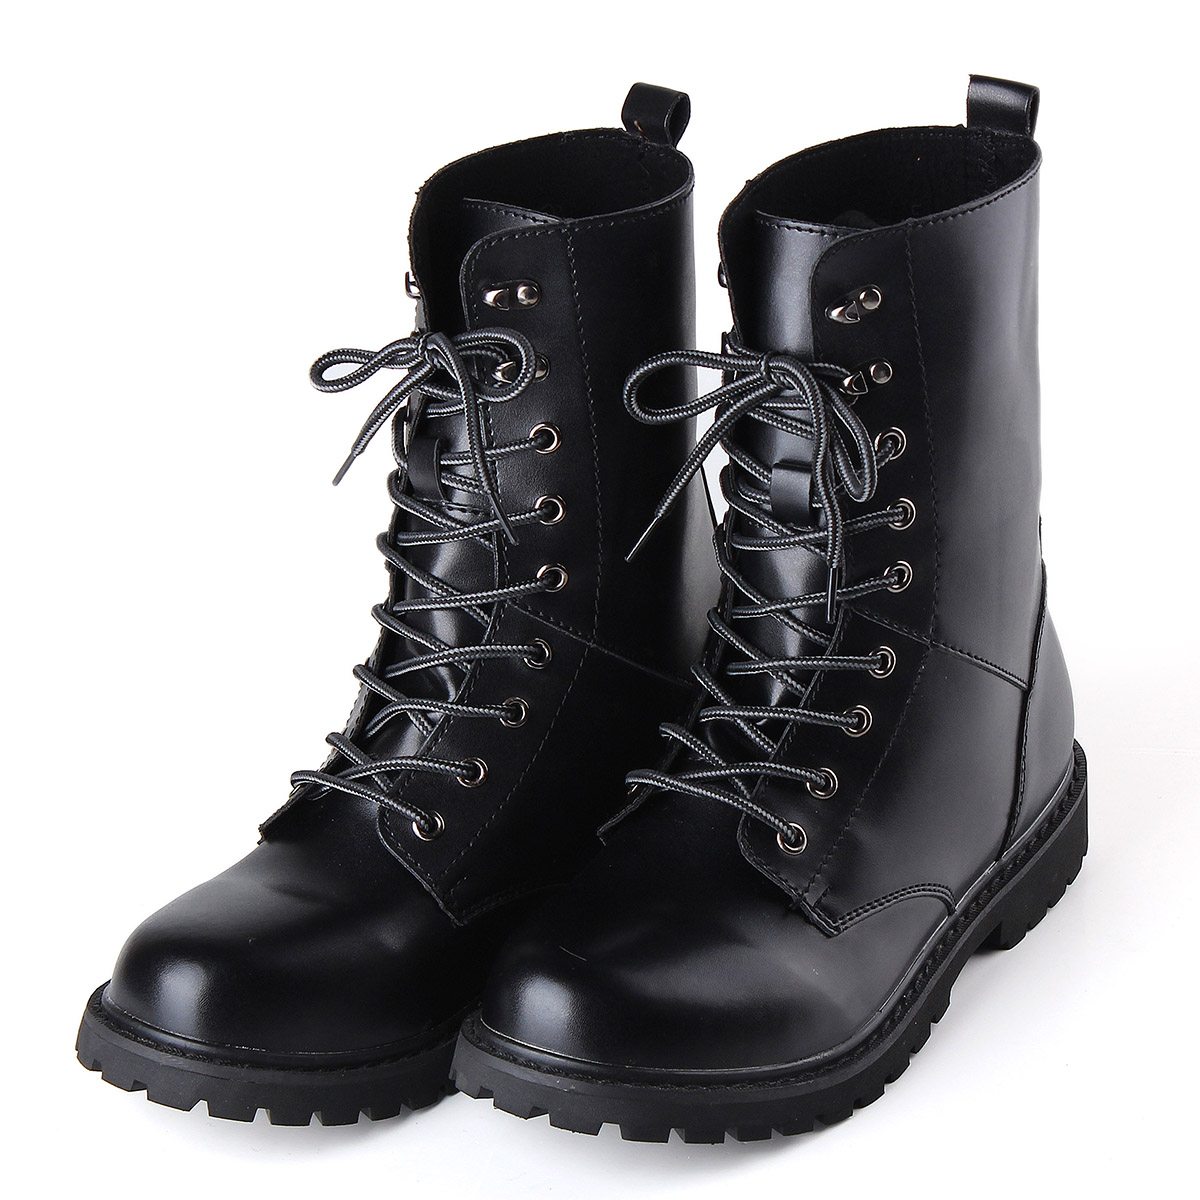 Men's Winter Keep Warm Waterproof Non-Slip Black Combat PU Leather Lace Up Jungle Hiking Snow Boots